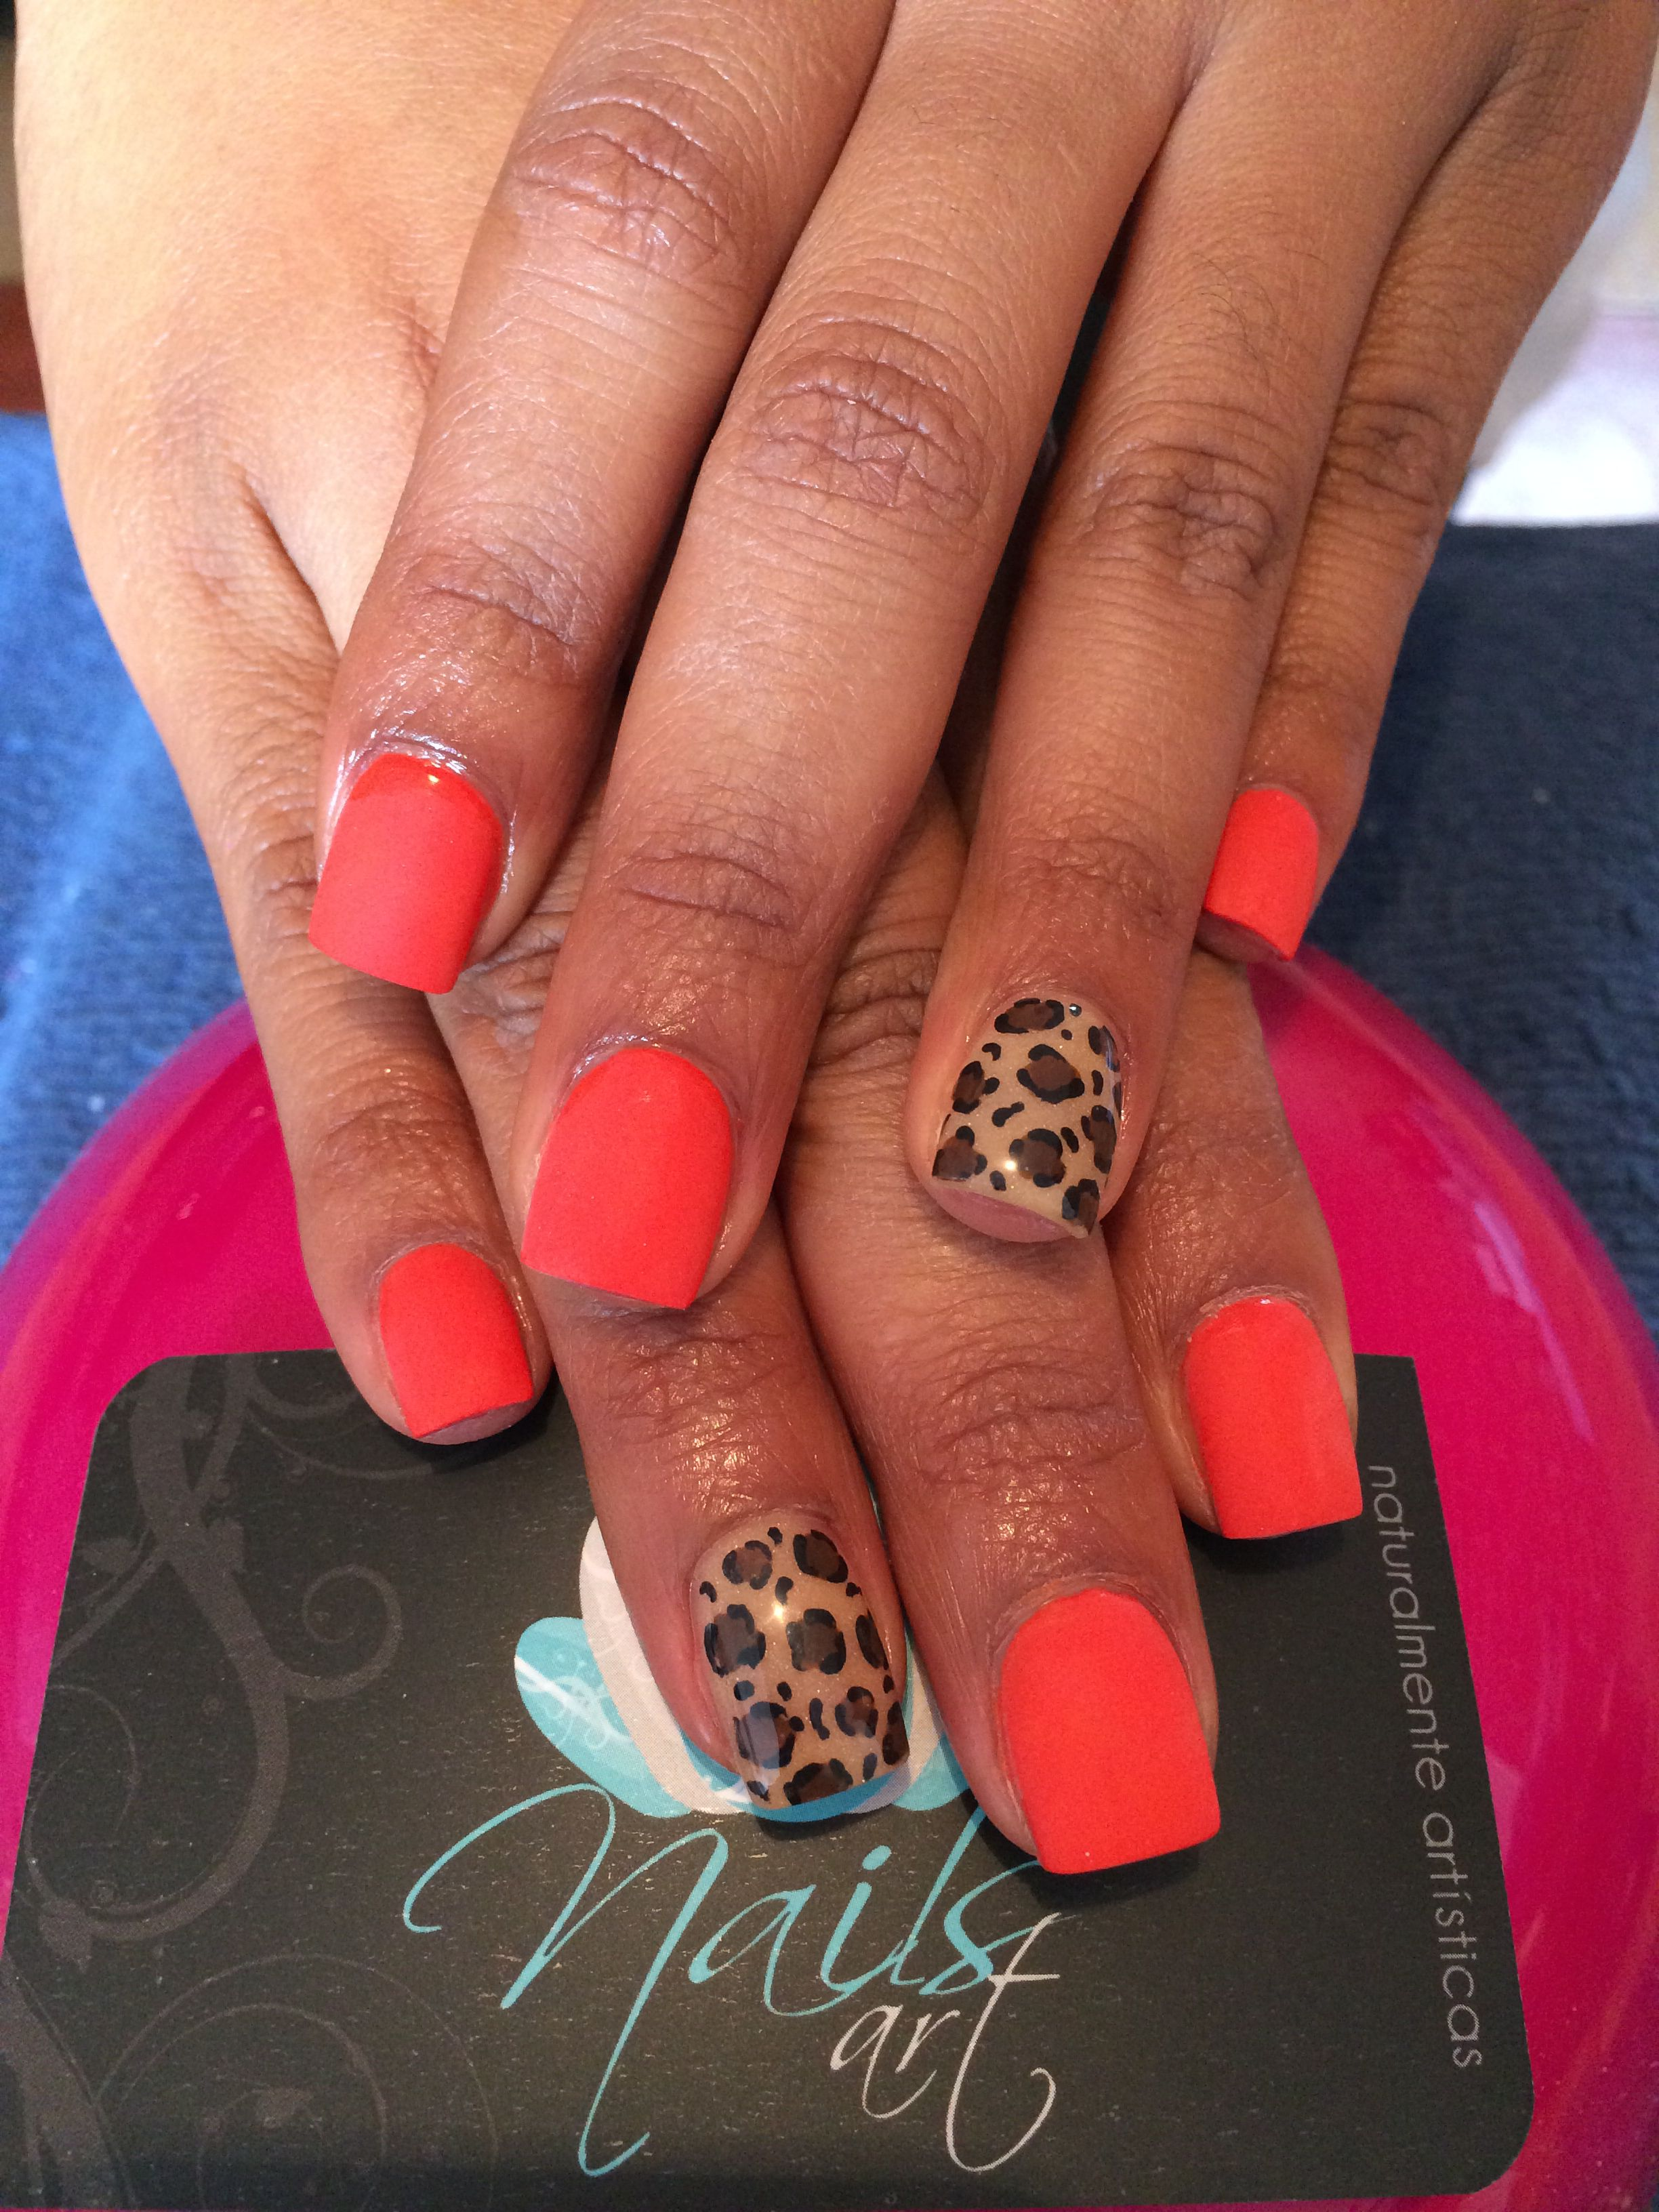 Nails art acrylic nails nails find more women fashion ideas on